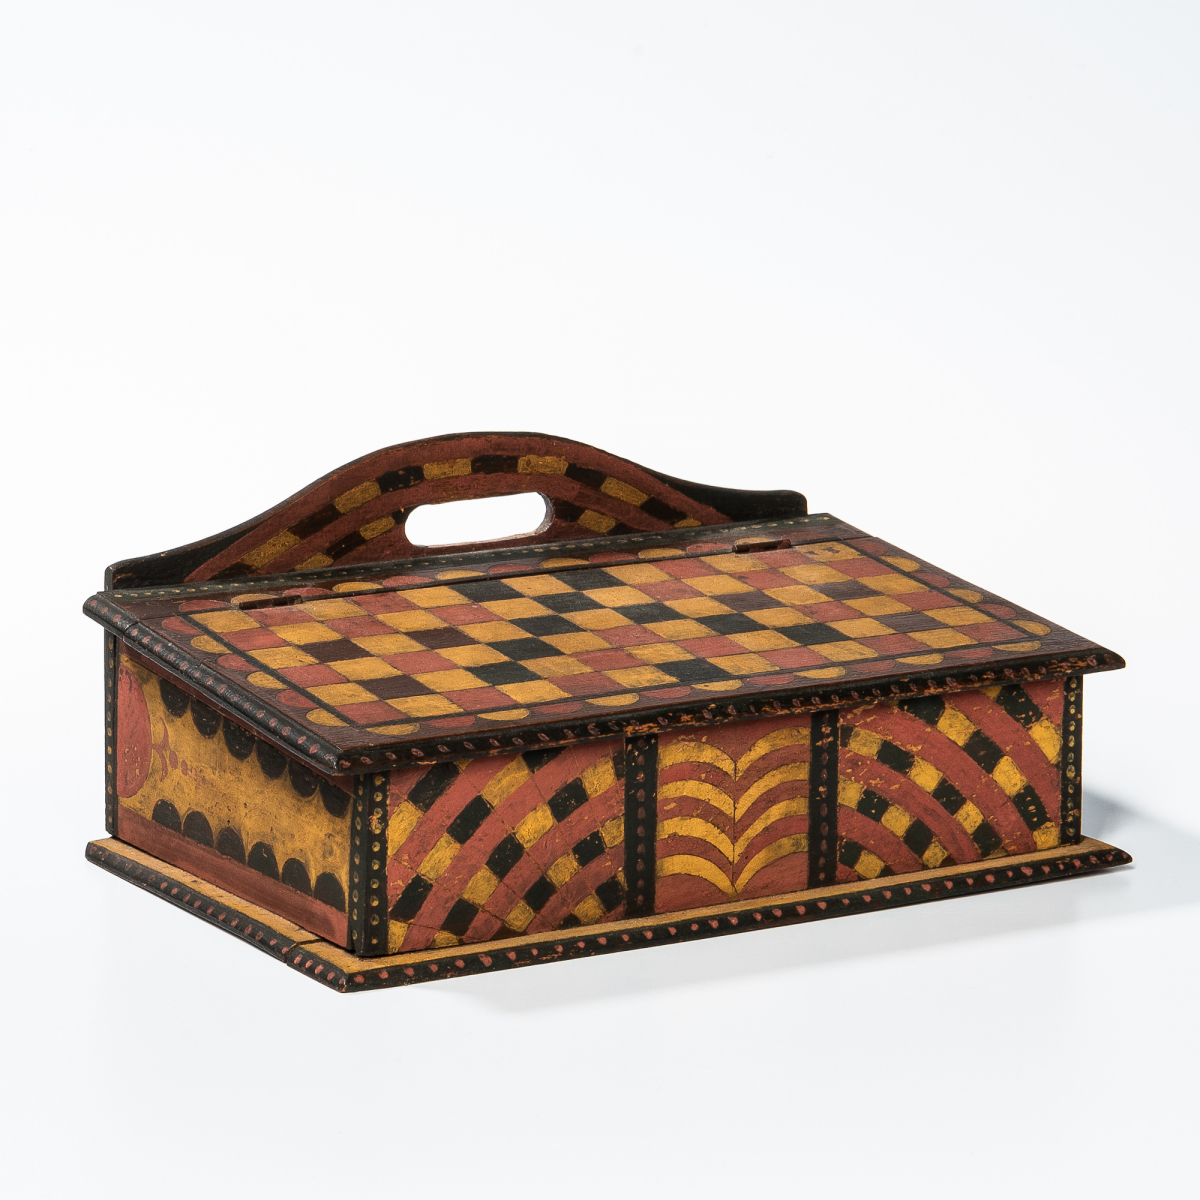 Paint-decorated Slant-lid Box Attributed to the Checkerboard Artist, probably Somerset County, Pennsylvania, second quarter 19th century